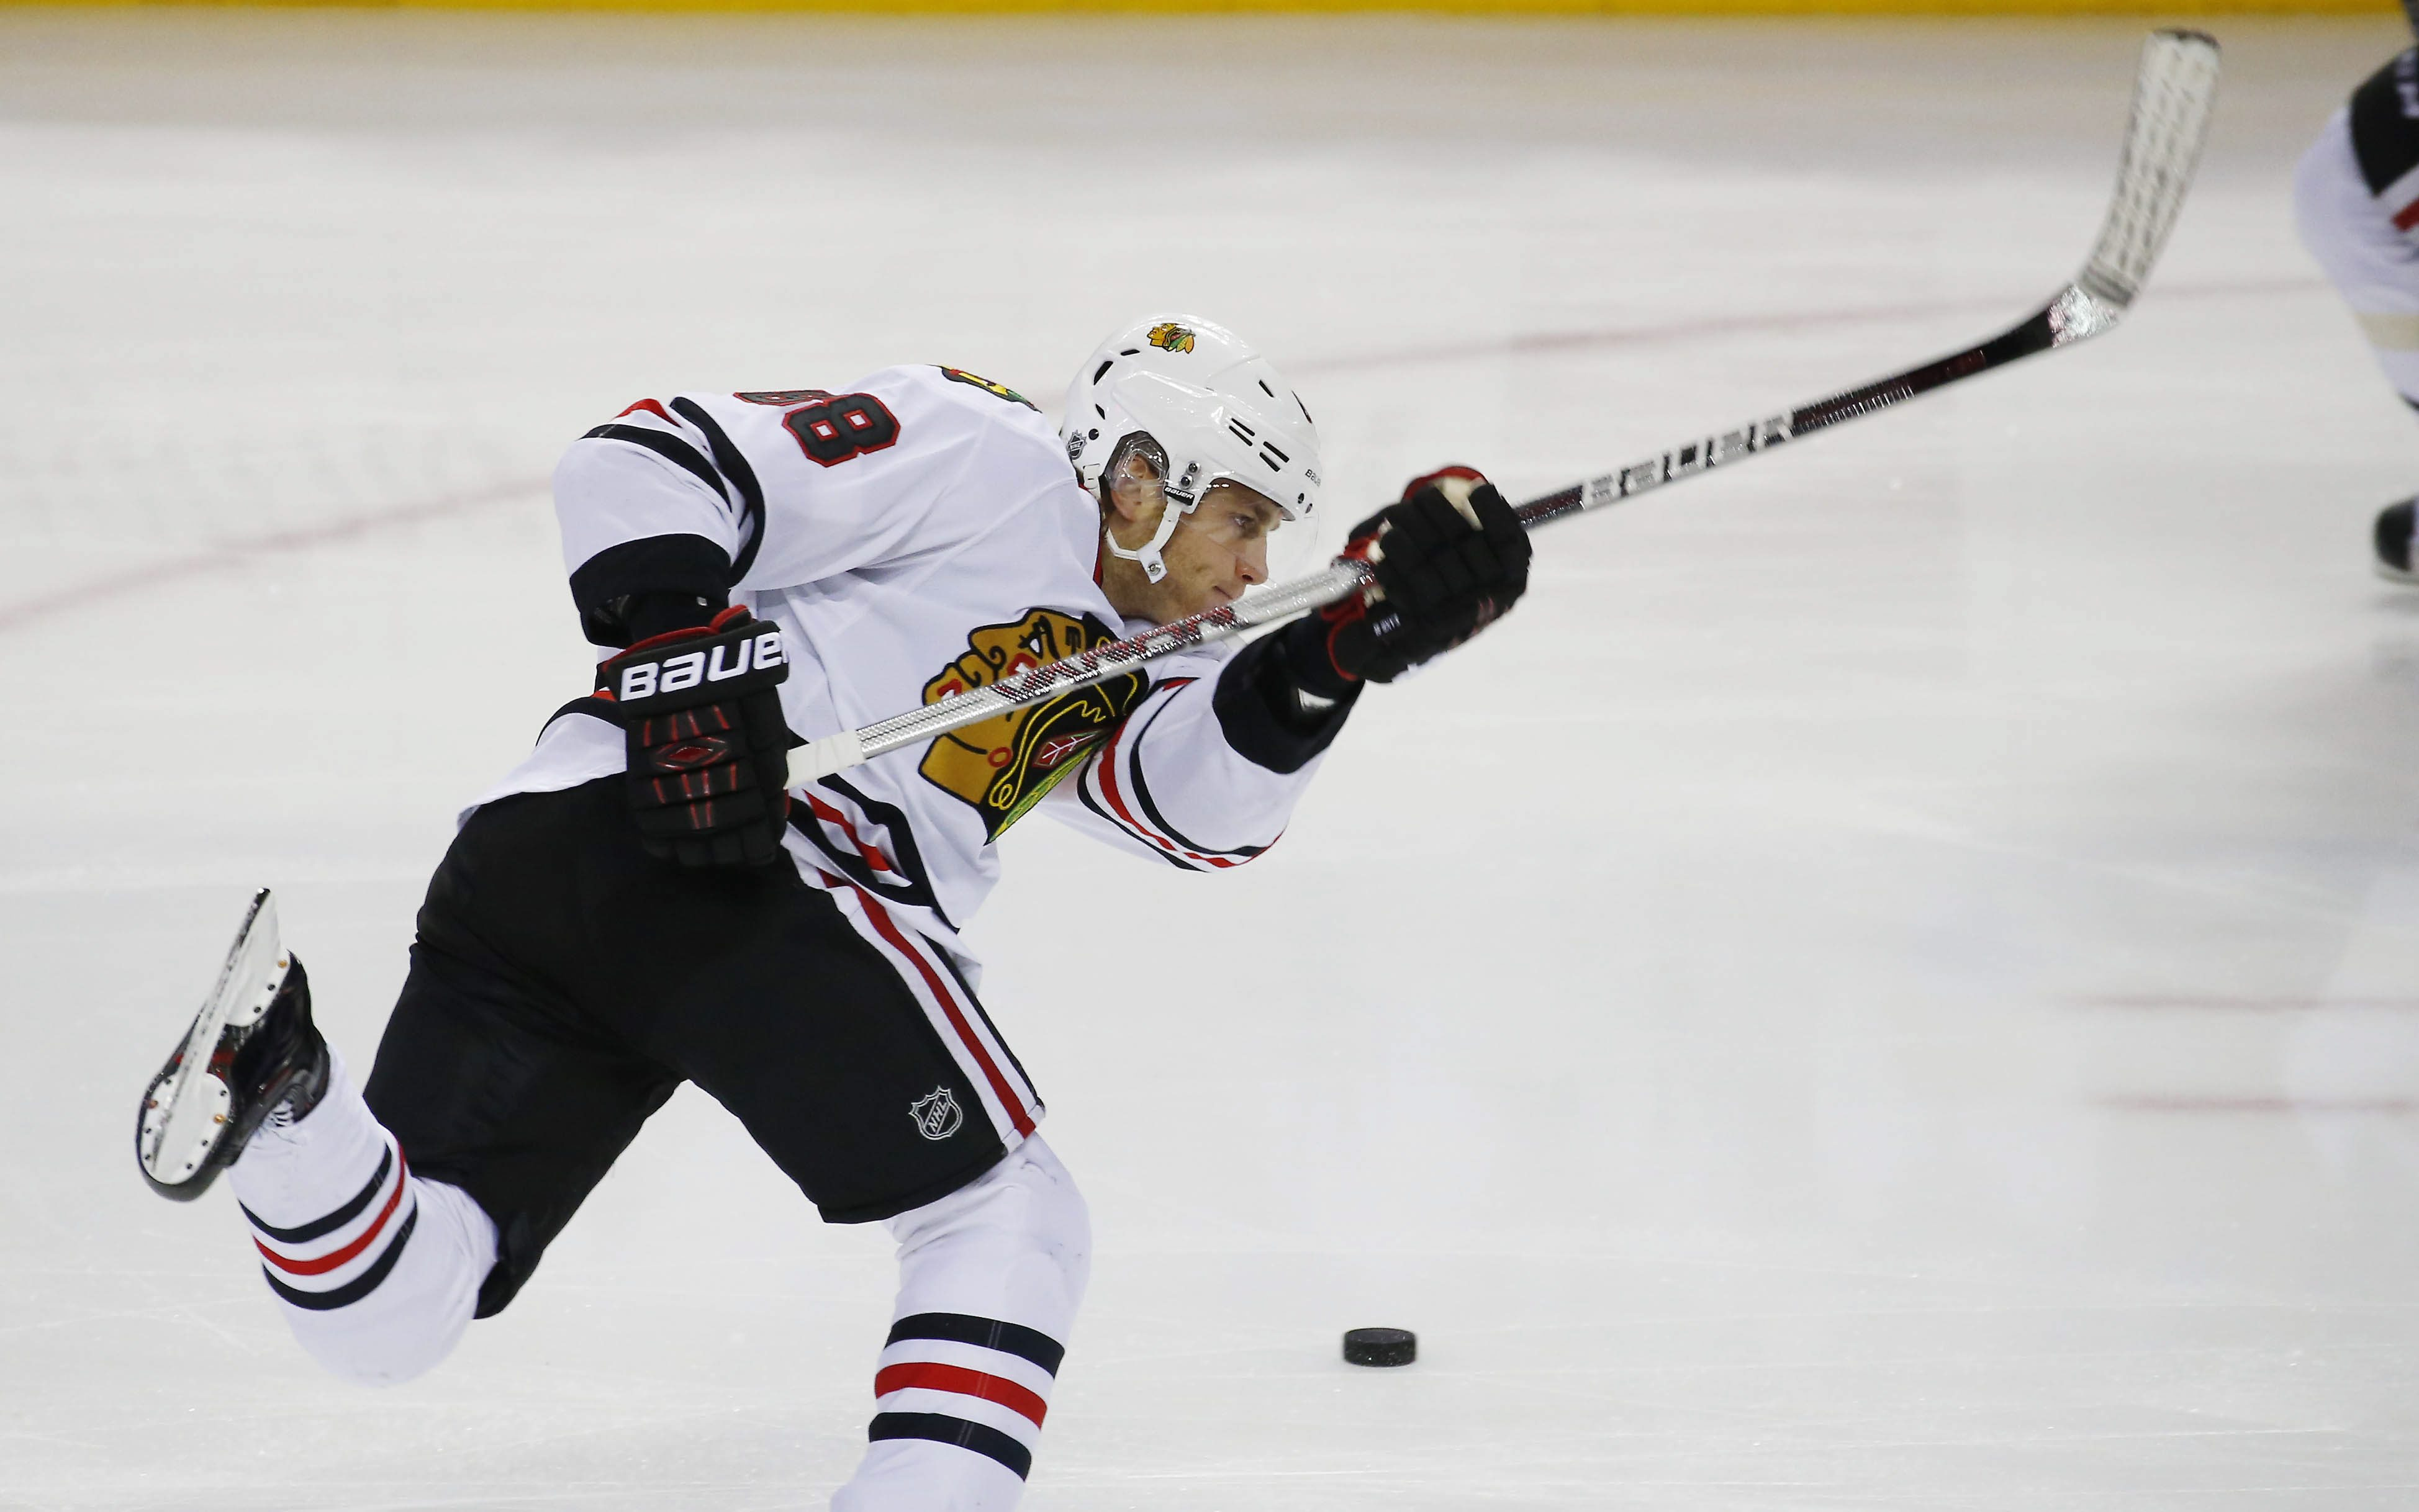 Chicago Blackhawks forward Patrick Kane fires a shot in the pre game skate at First Niagara Center in Buffalo on Dec. 19. (Mark Mulville/Buffalo News)